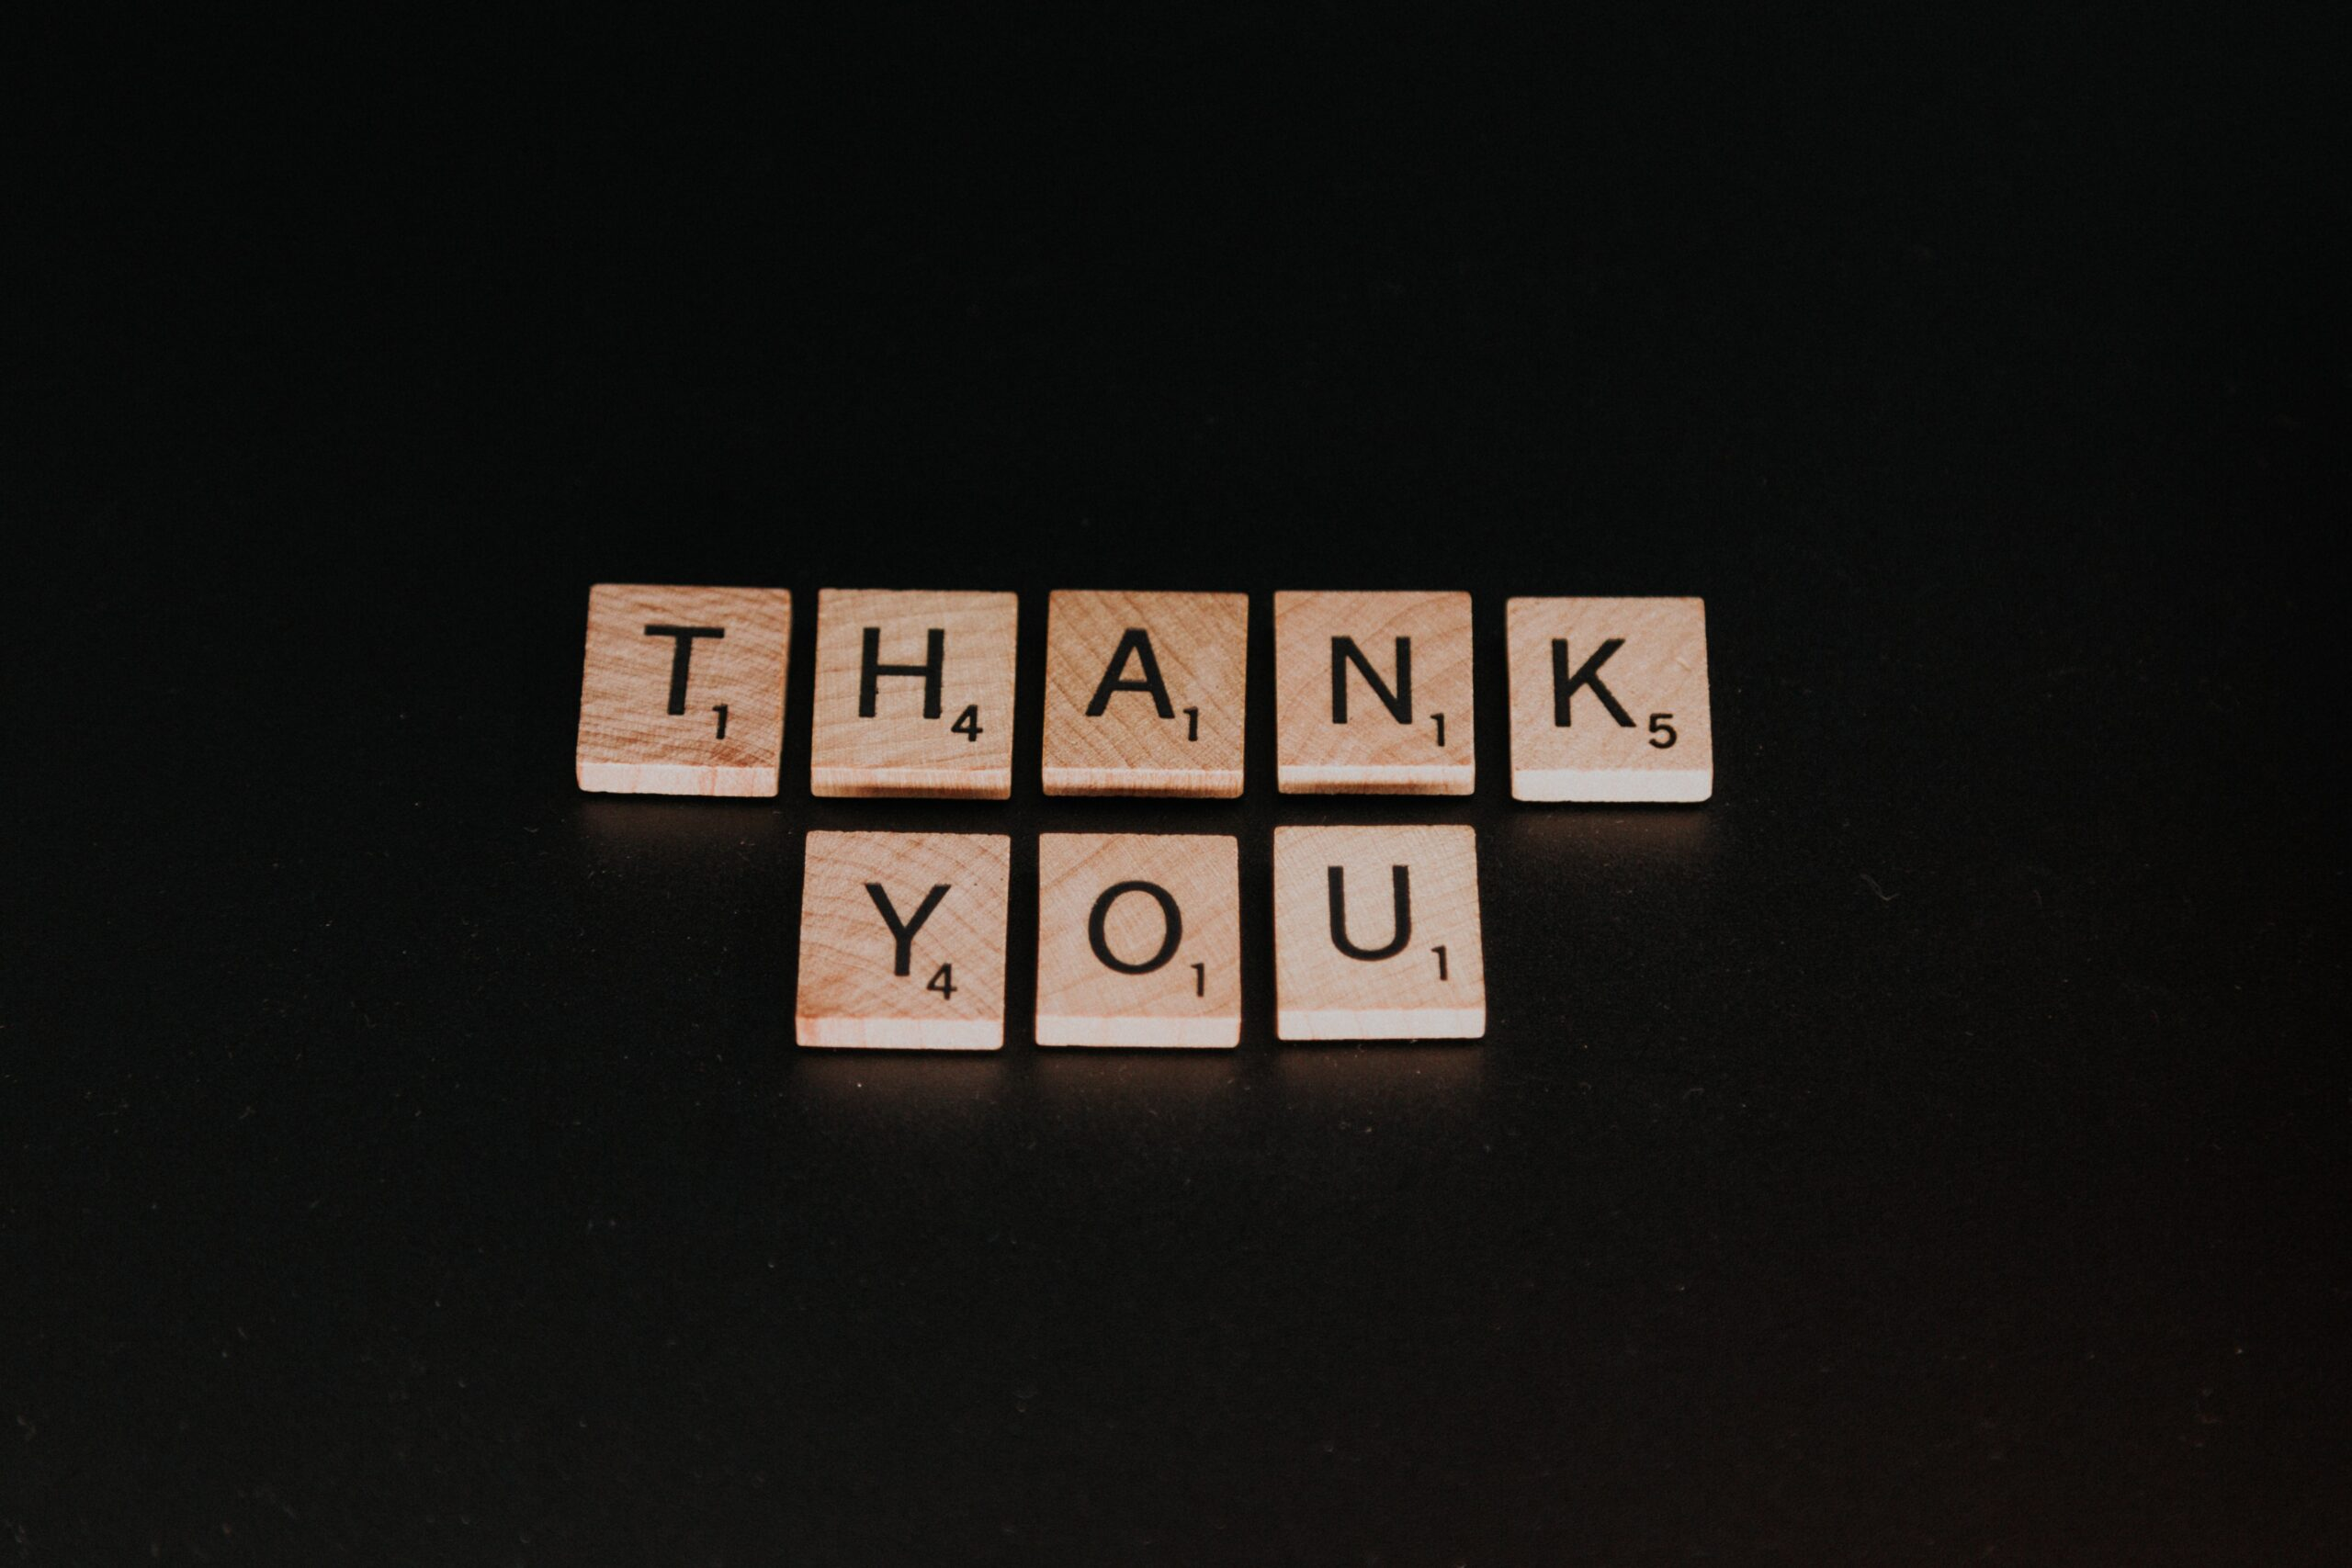 """Scrabble tiles spelling out """"Thank you"""""""